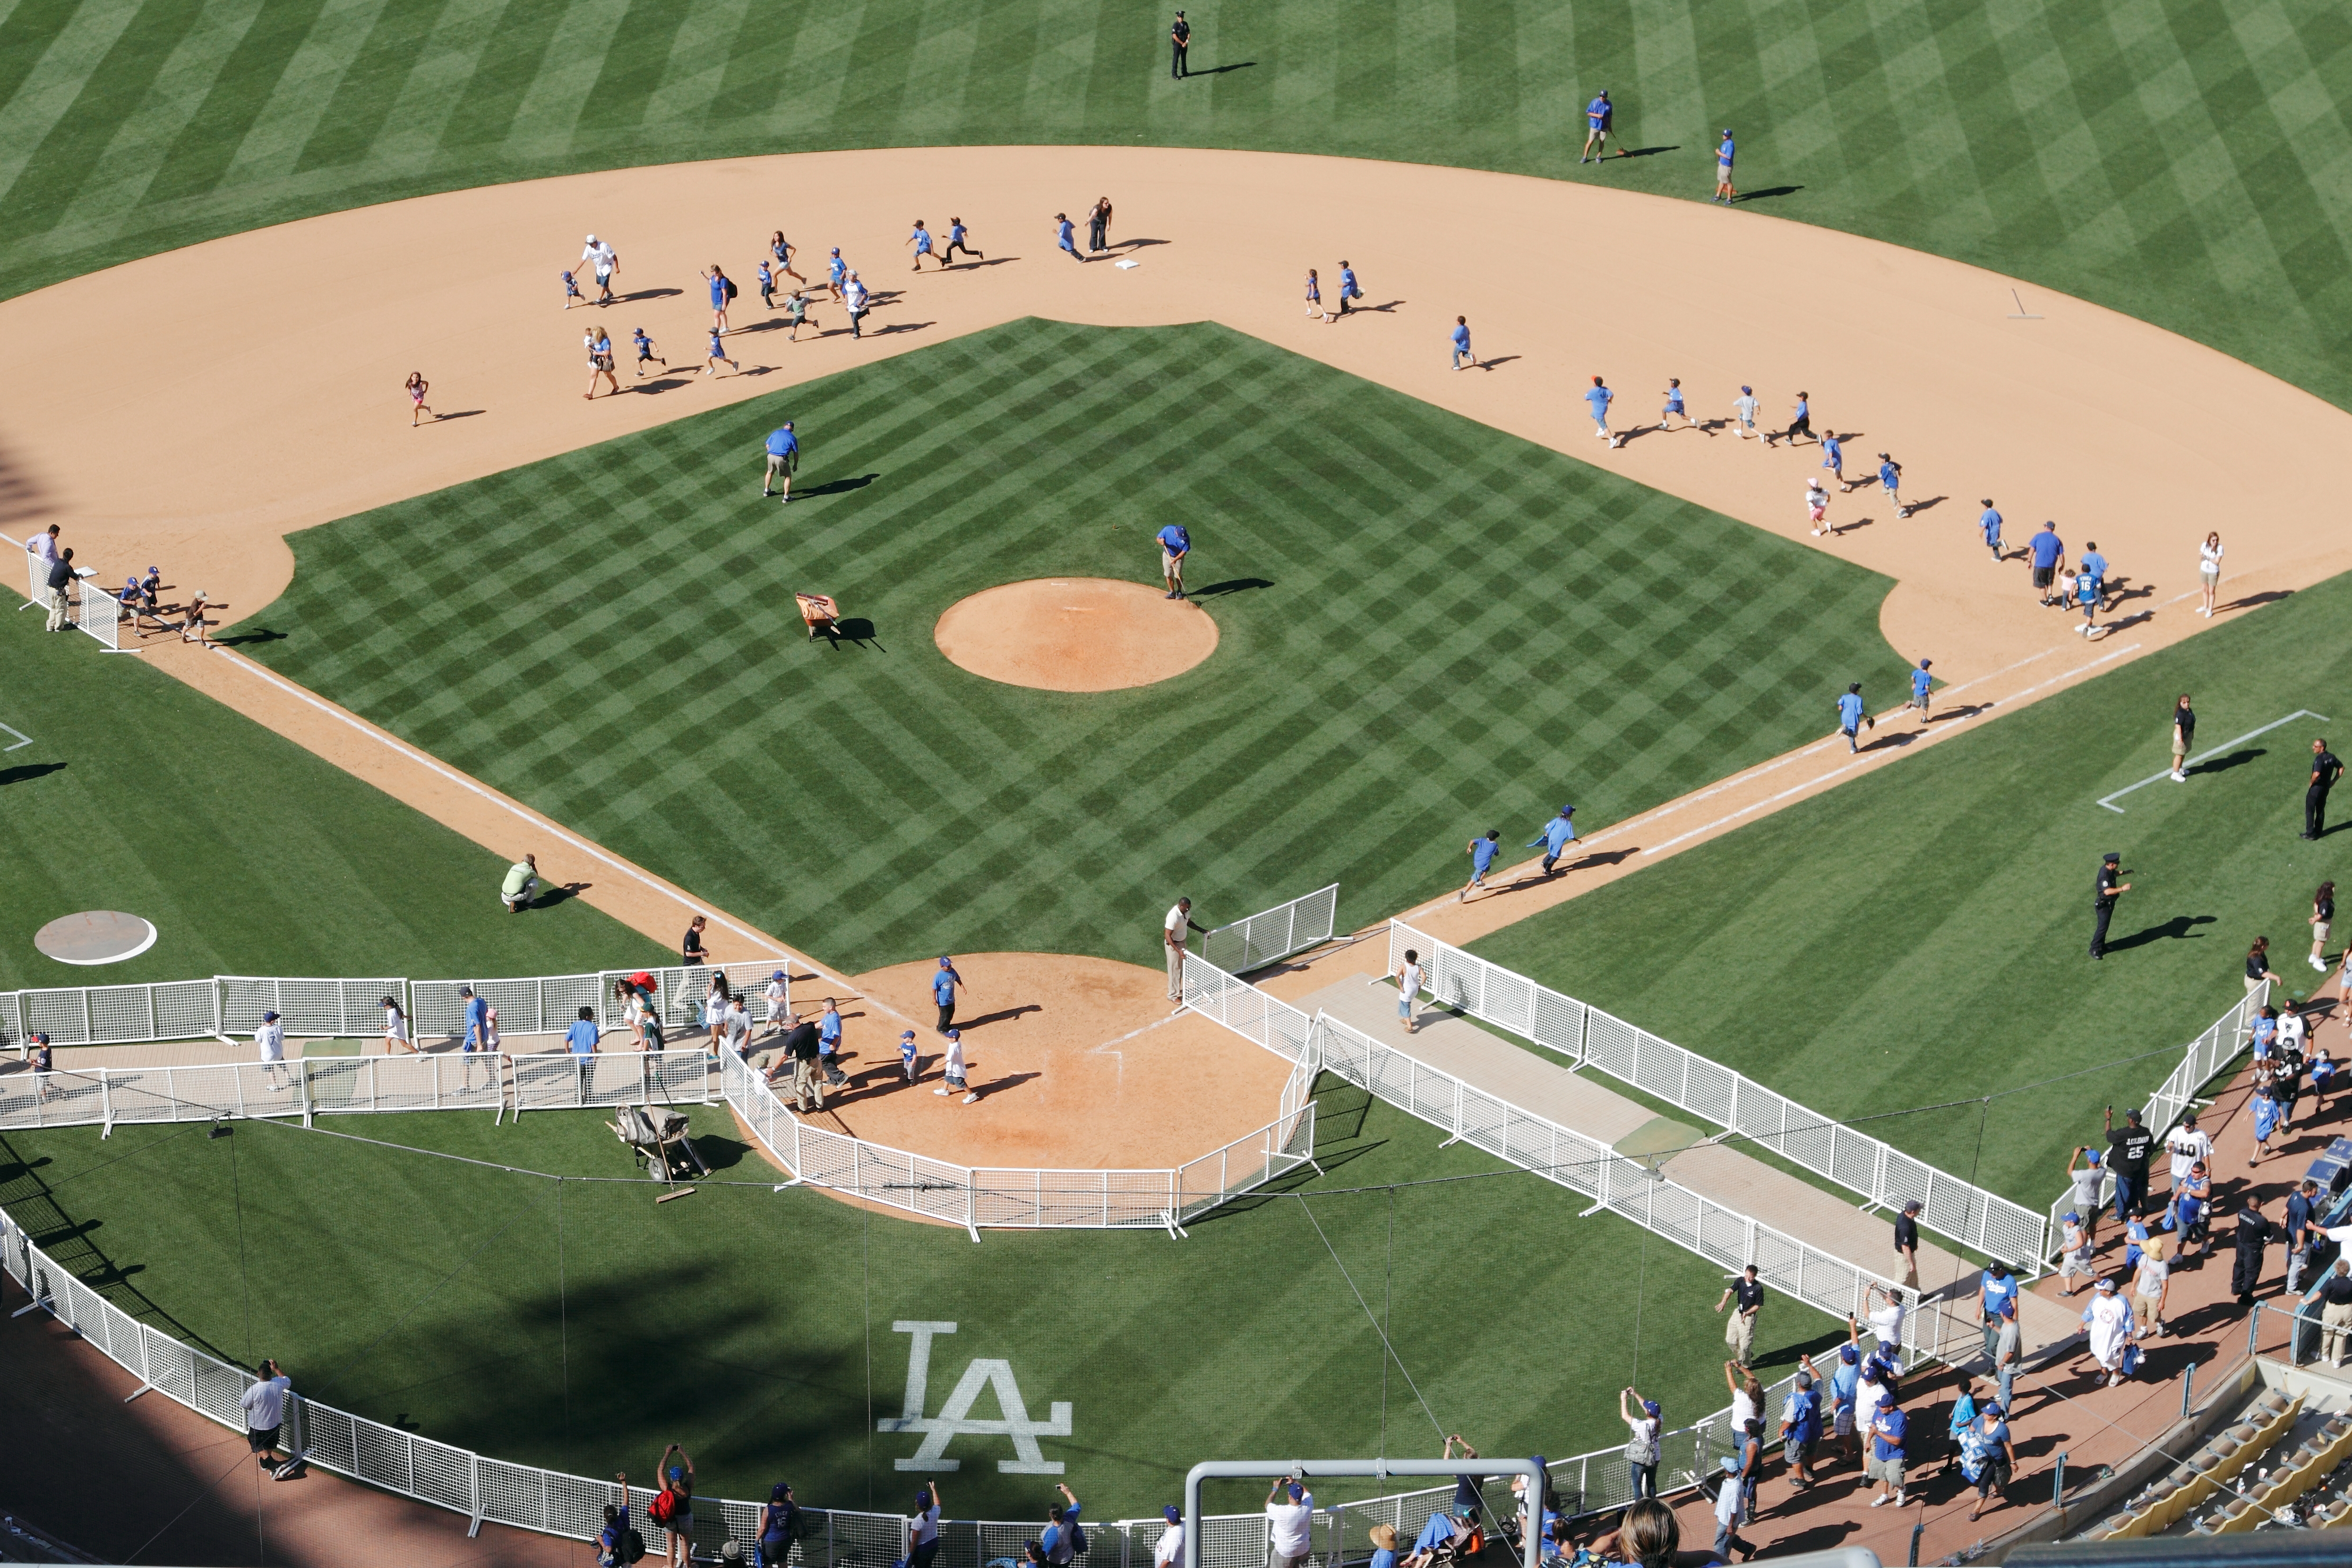 See How Robots Allowed Pediatric Patients to 'Run the Bases' at Dodger Stadium